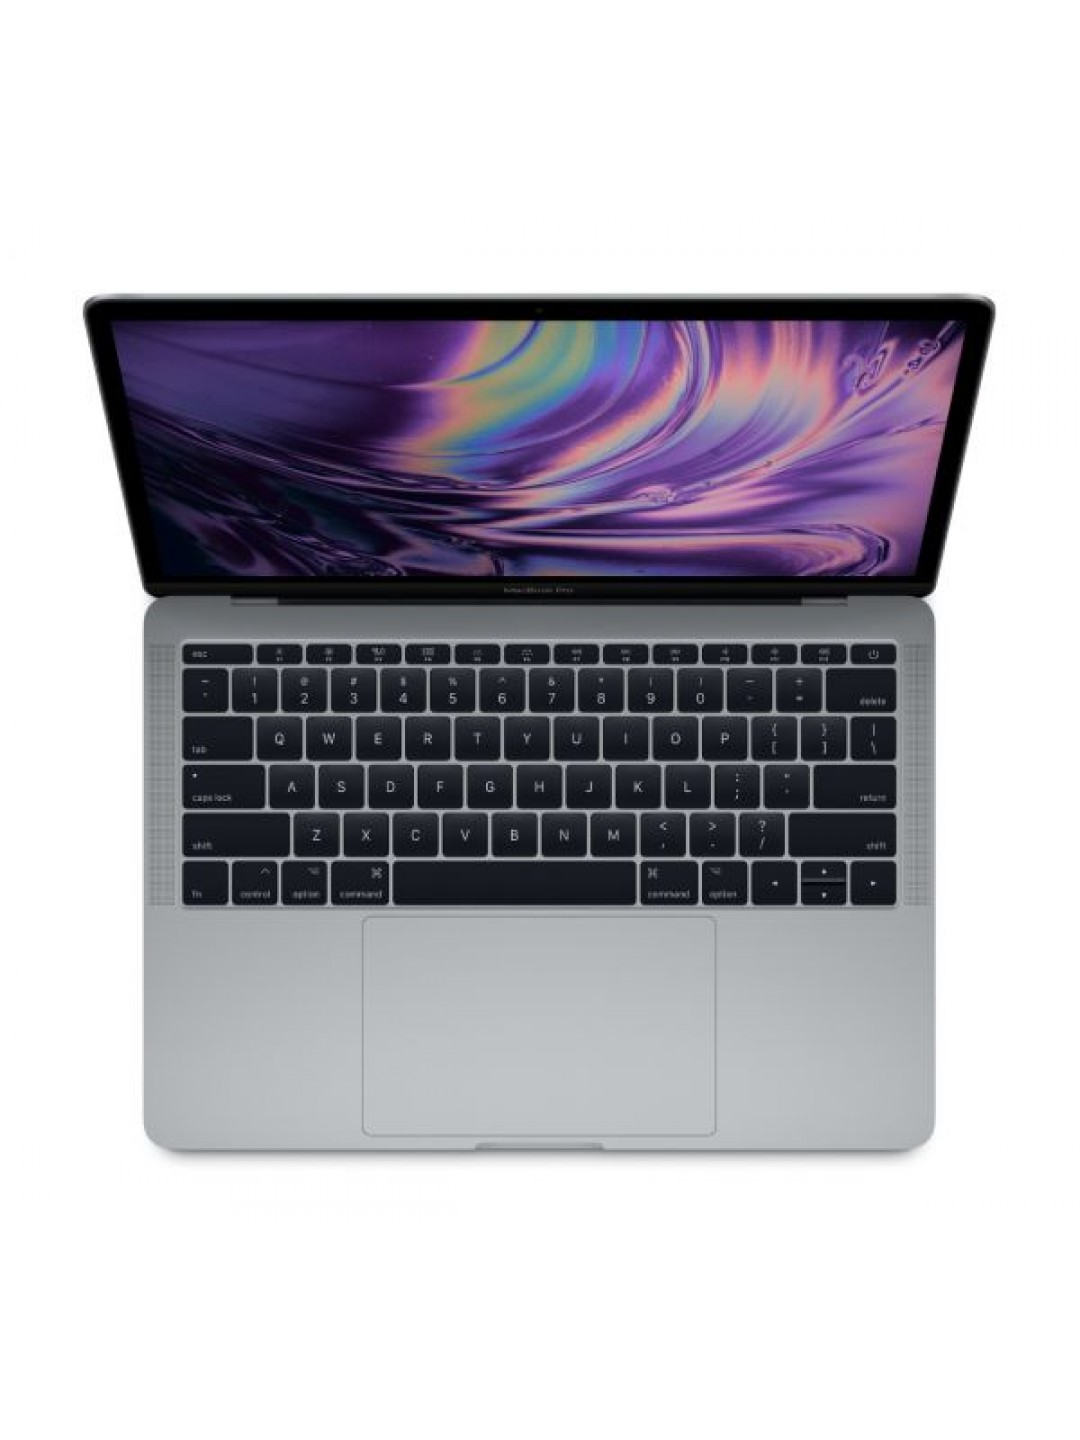 Laptop Macbook Air 2018 MRE92 13 inch/1.6Ghz Dual Core i5/8GB/256GB/ Intel UHD Graphics 617